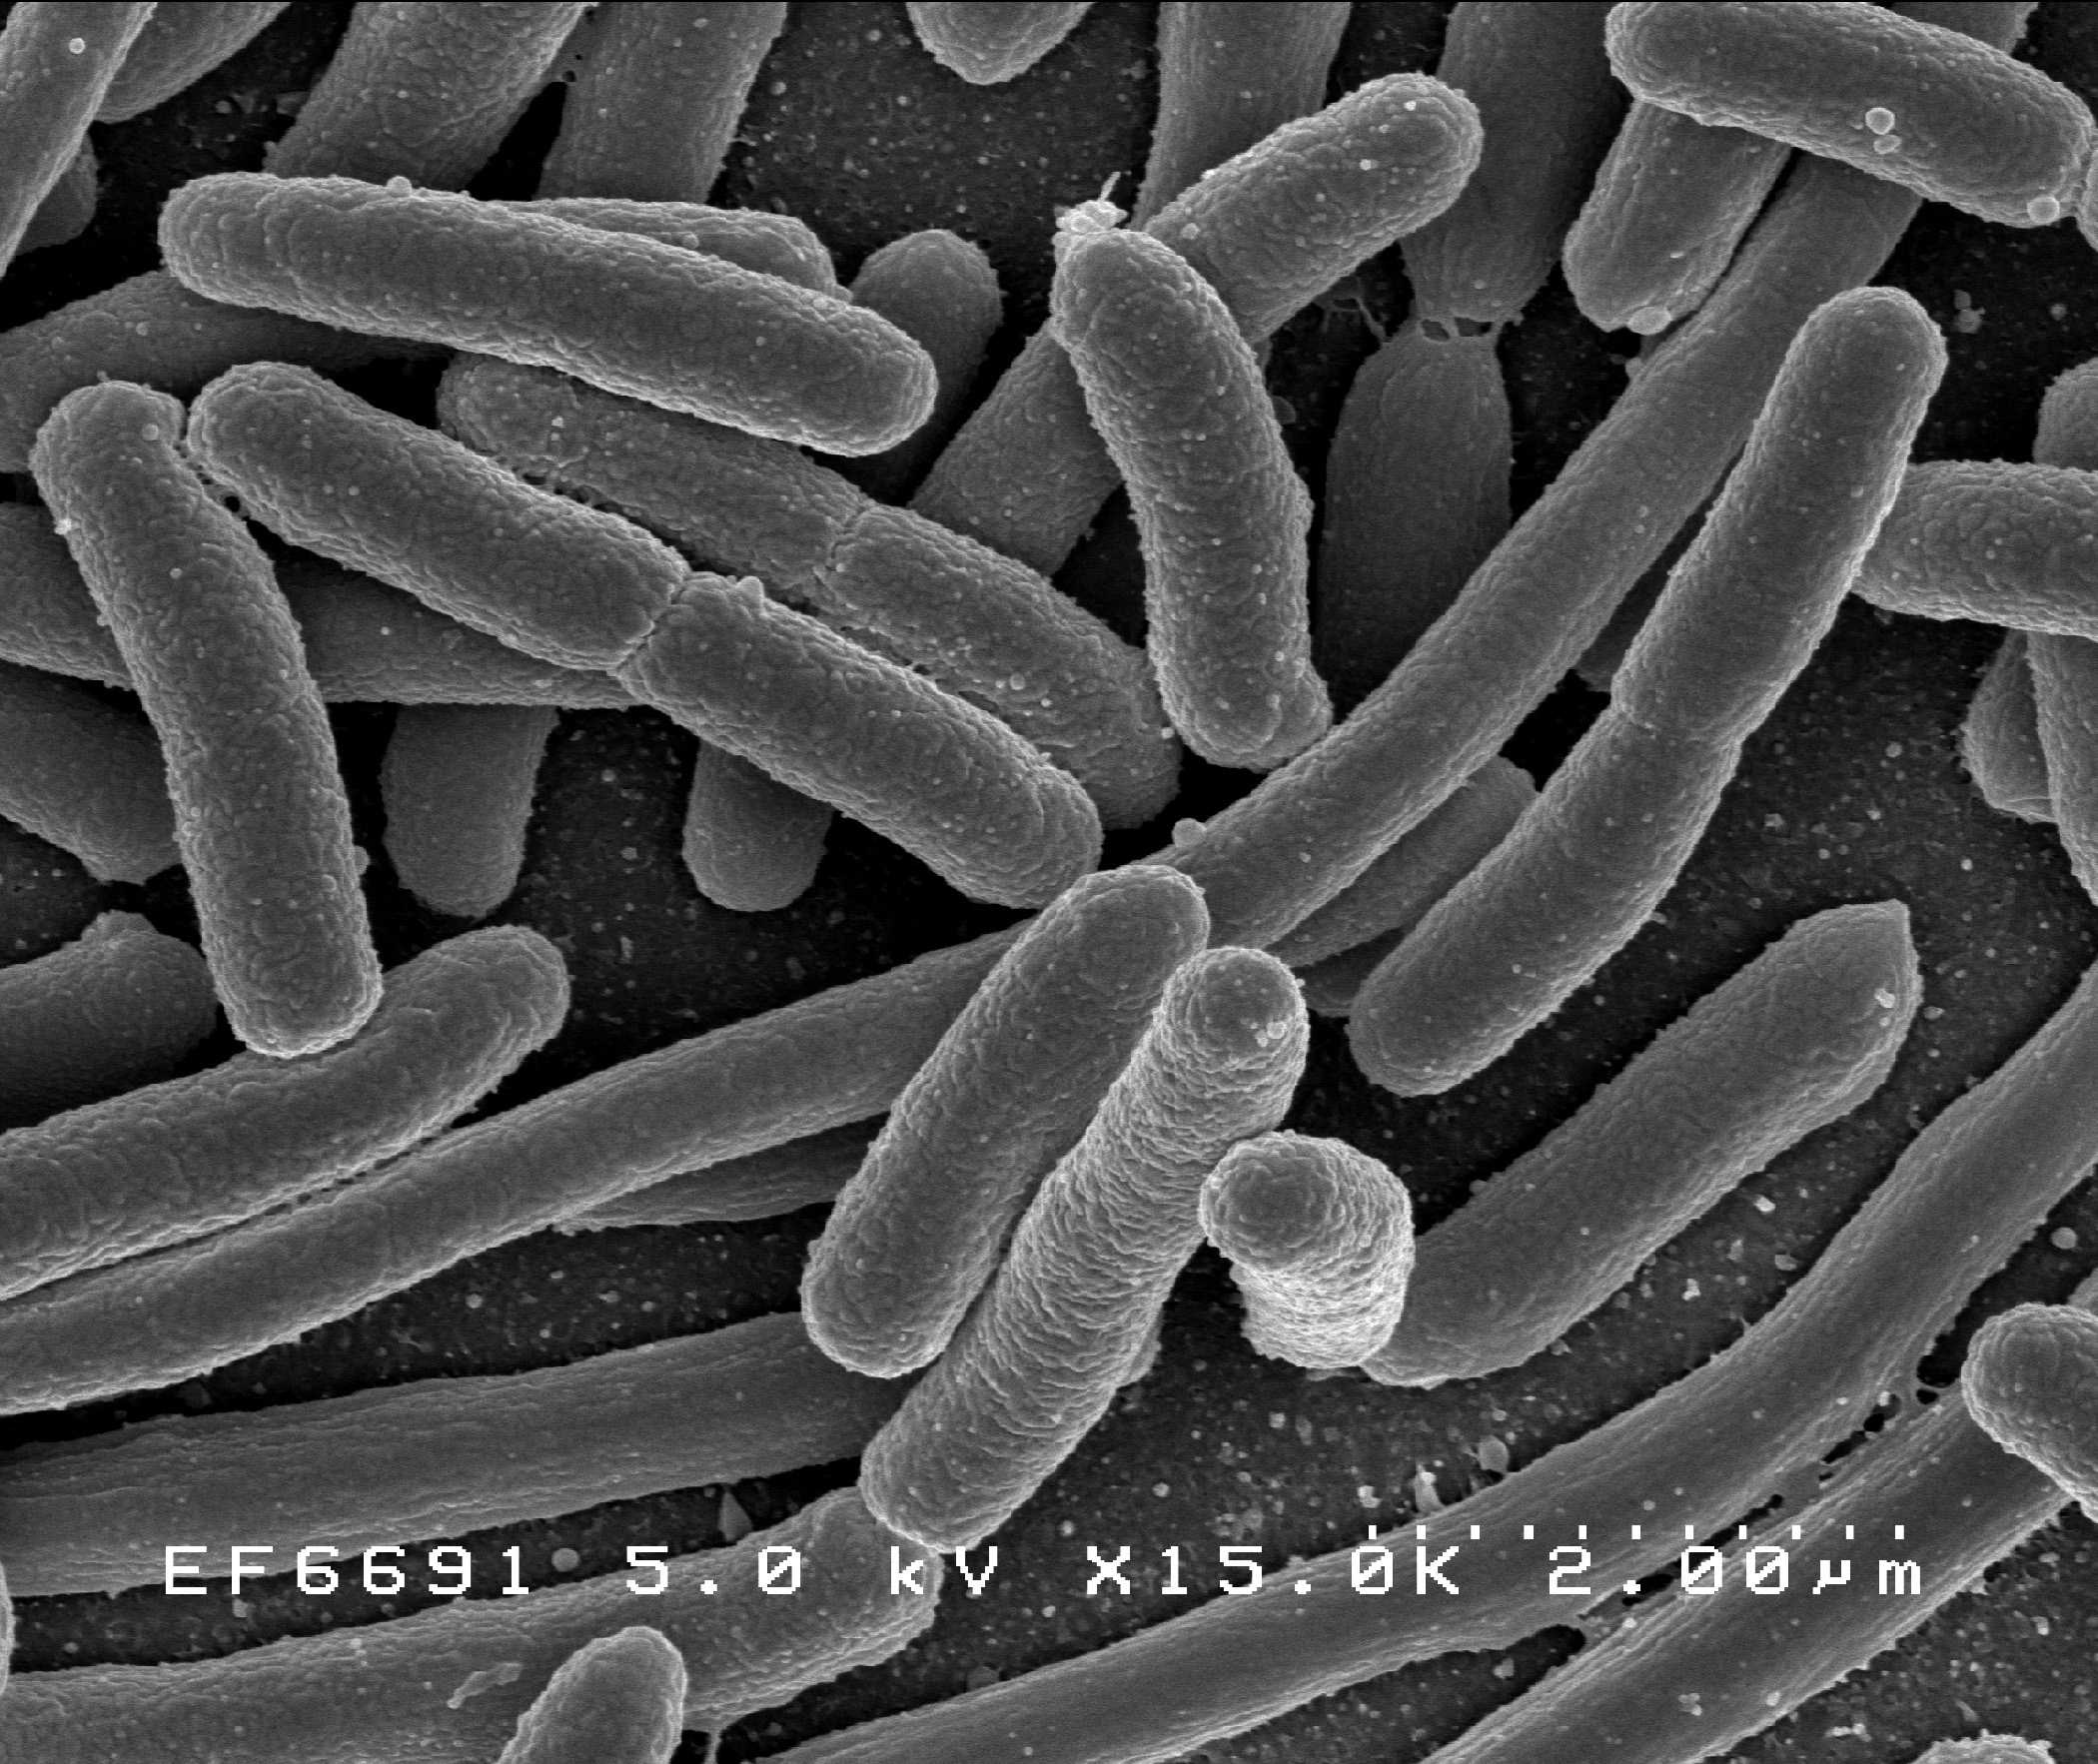 E. coli O157 can cause many types of illnesses.